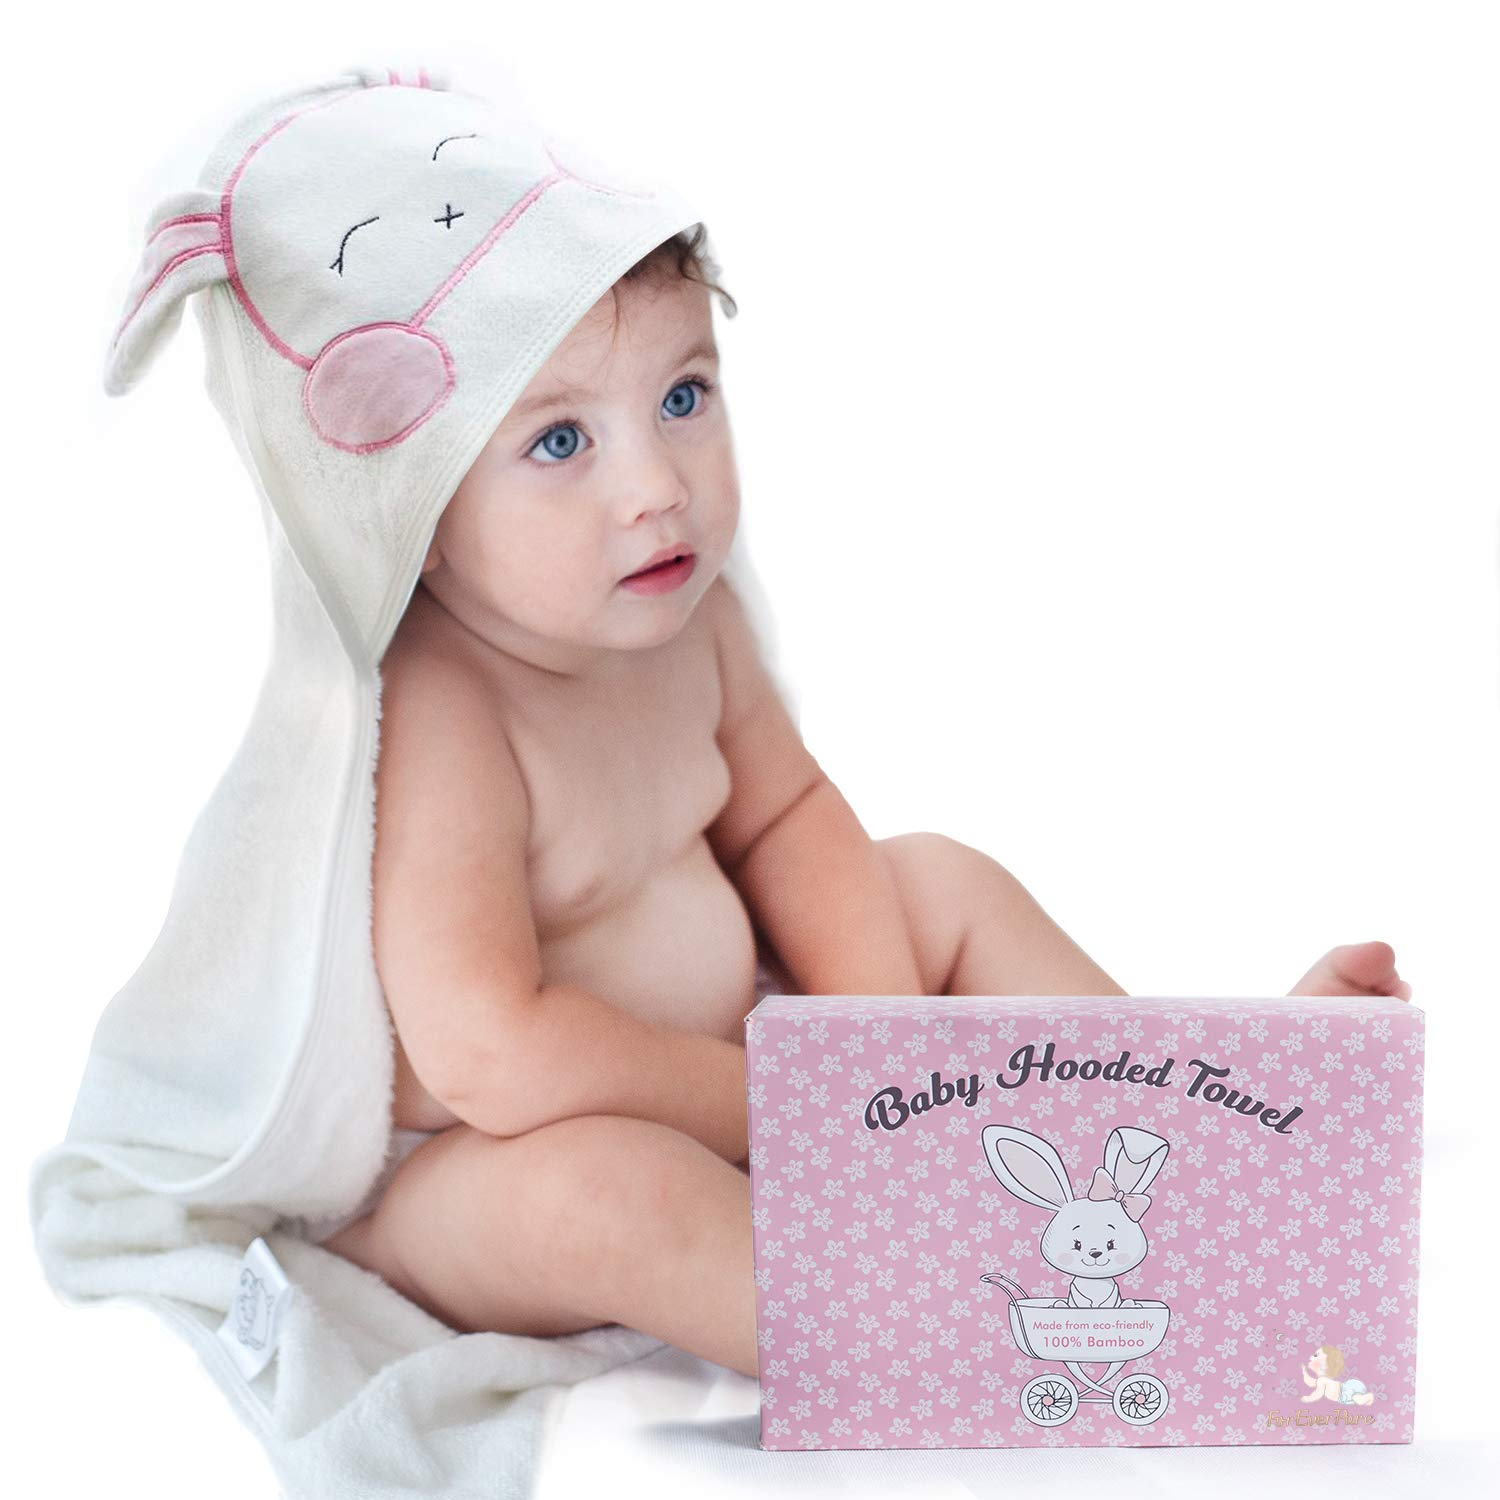 FOREVERPURE Baby Hooded Towel 100% Organic Bamboo Cotton, Super Absorbent, Unique Design for Baby Girl and Toddler. Ultra Soft, White, X-Large, 35 x 35 inches. Perfect with Washcloth